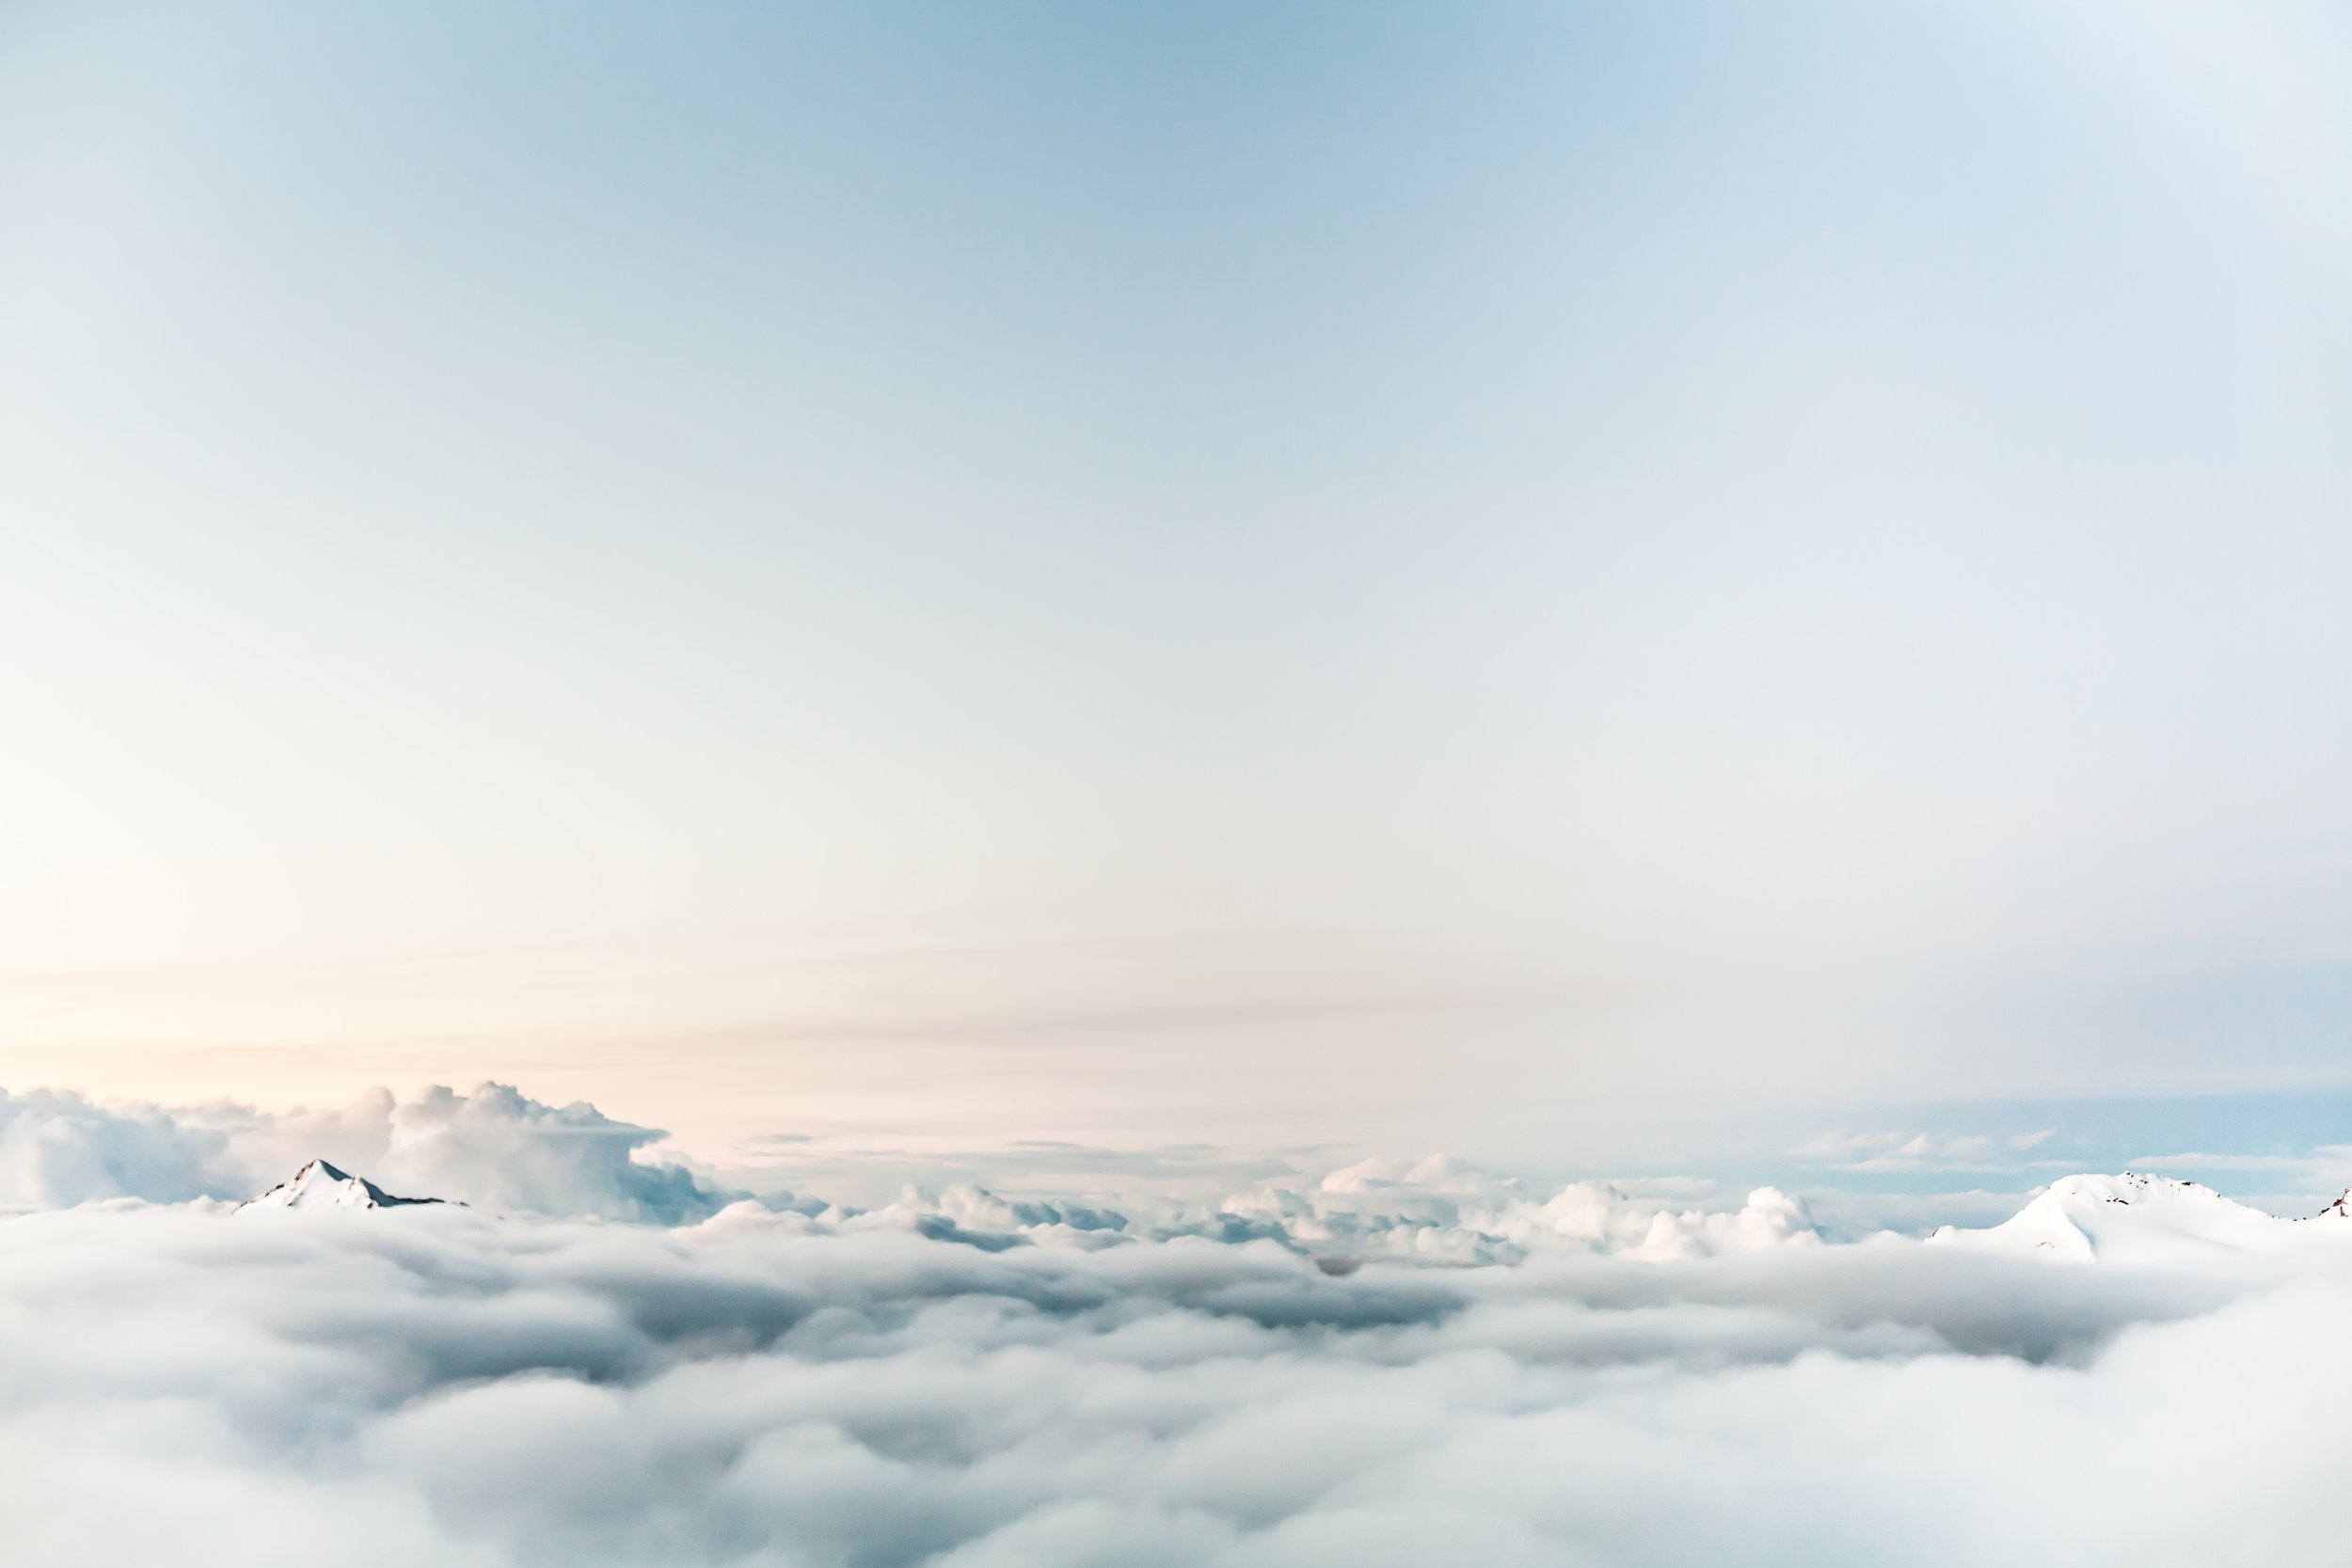 above-atmosphere-clouds-37728.jpg